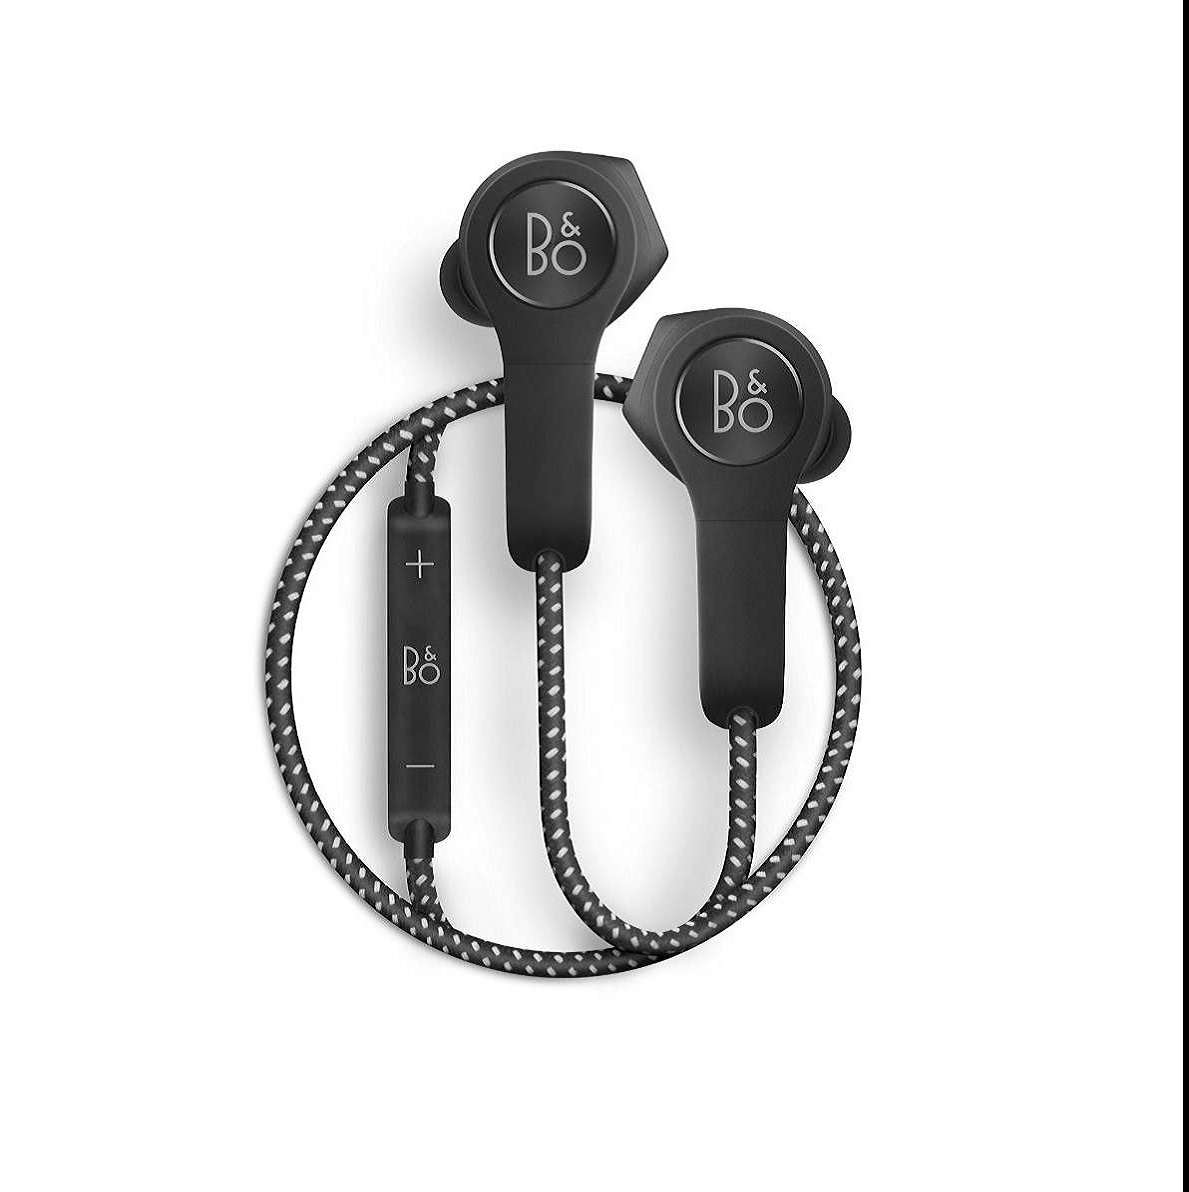 bang olufsen beoplay h5 earphones. Black Bedroom Furniture Sets. Home Design Ideas